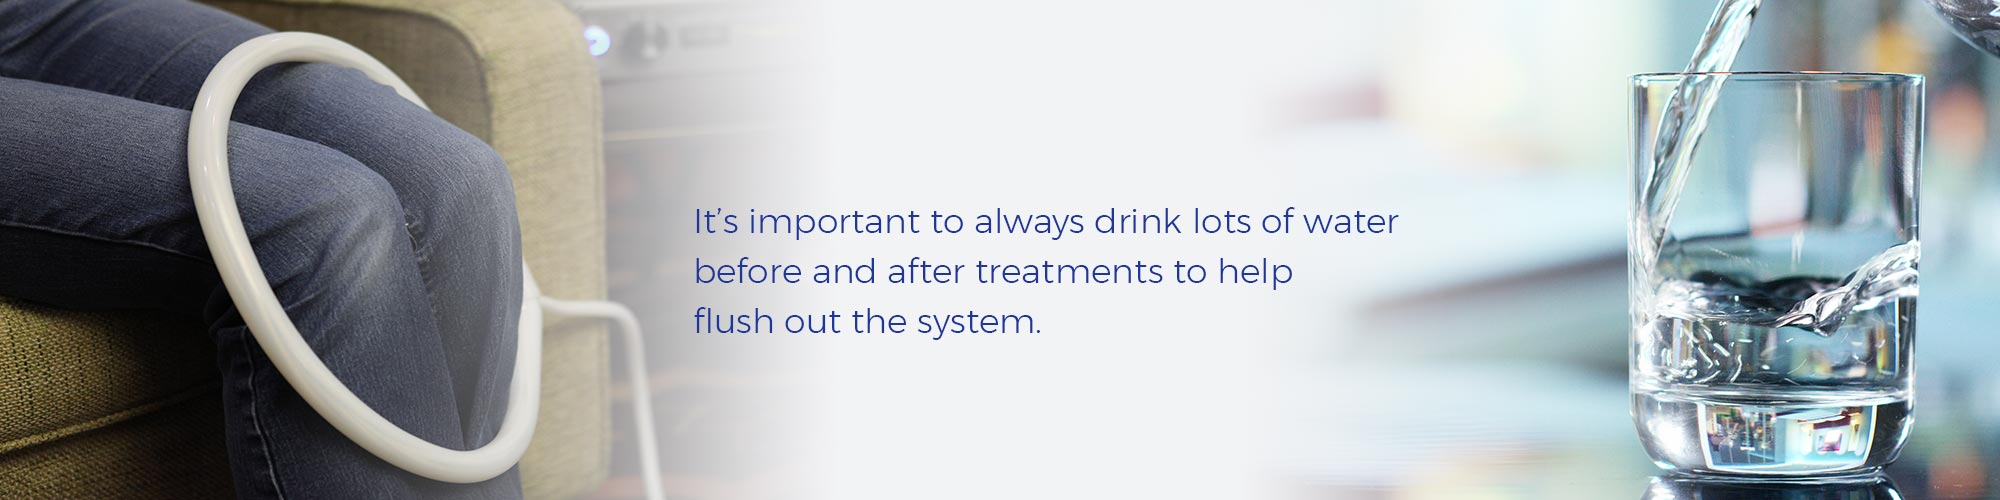 It's important to always drink lots of water before and after treatments to help flush out the system.